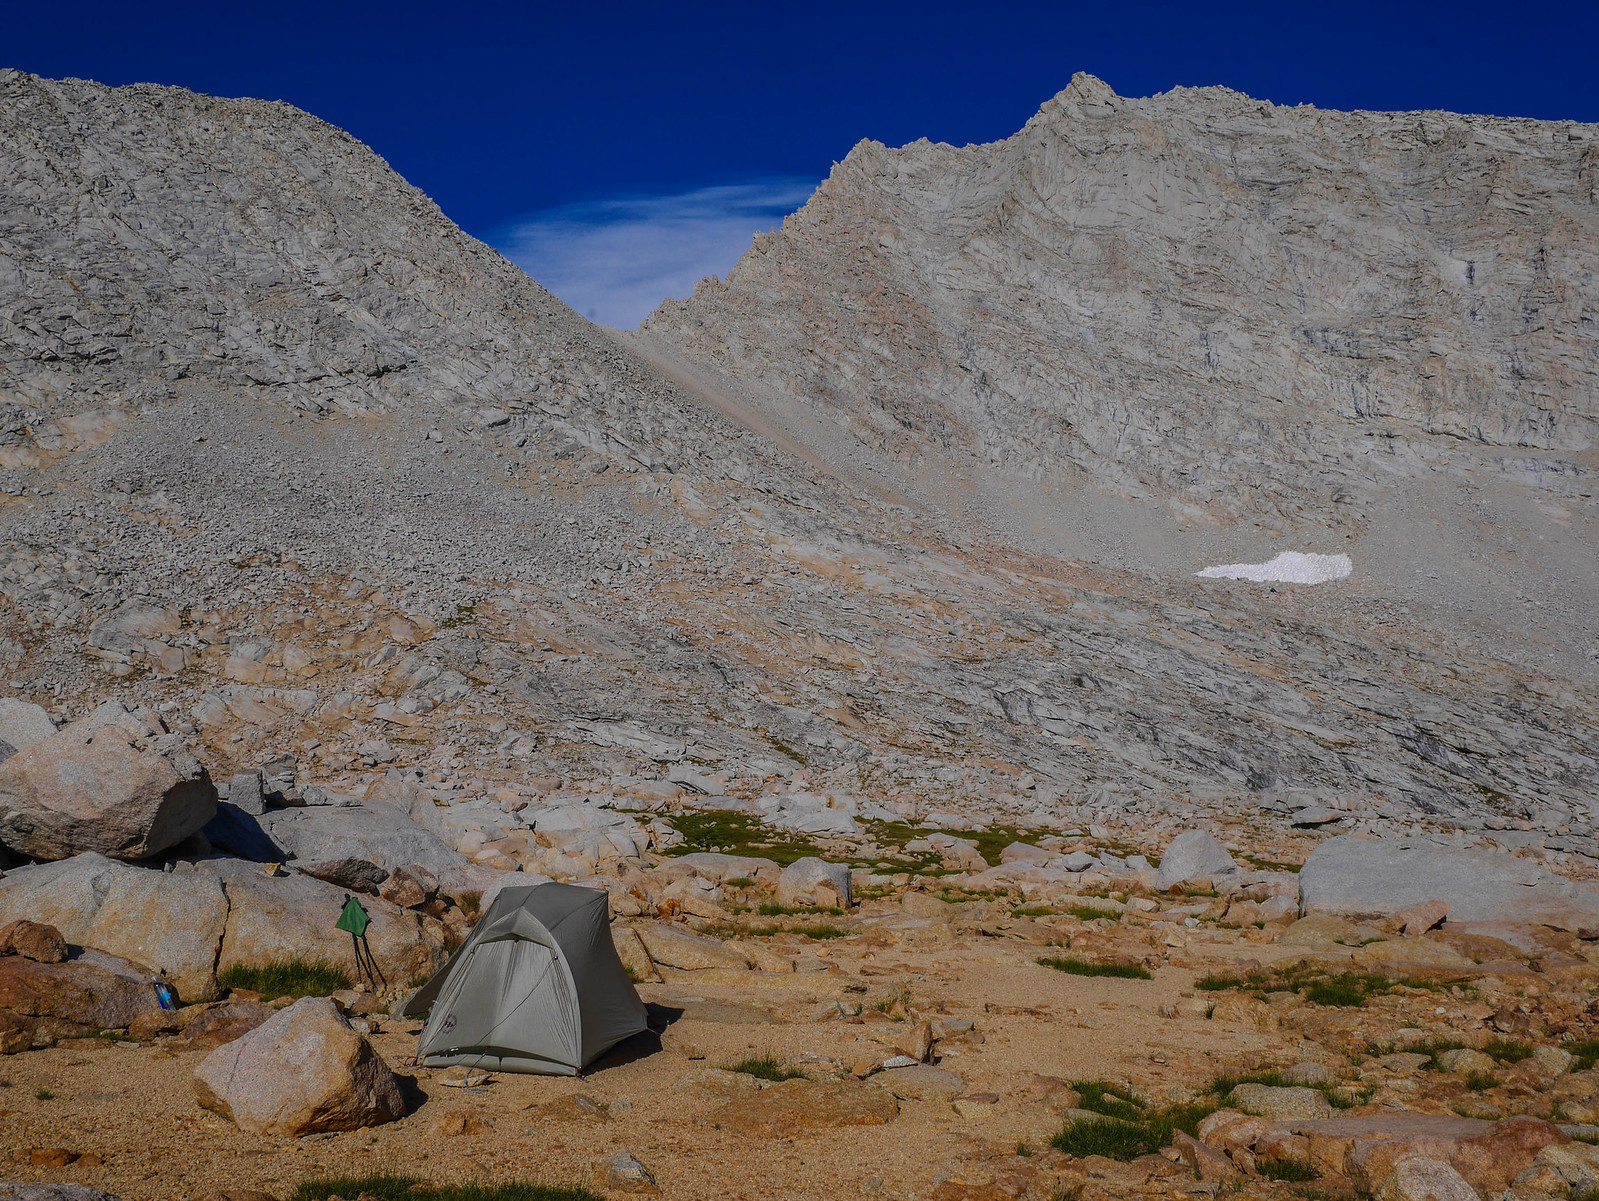 Camp 4 at 12,200ft just south of Forester Pass